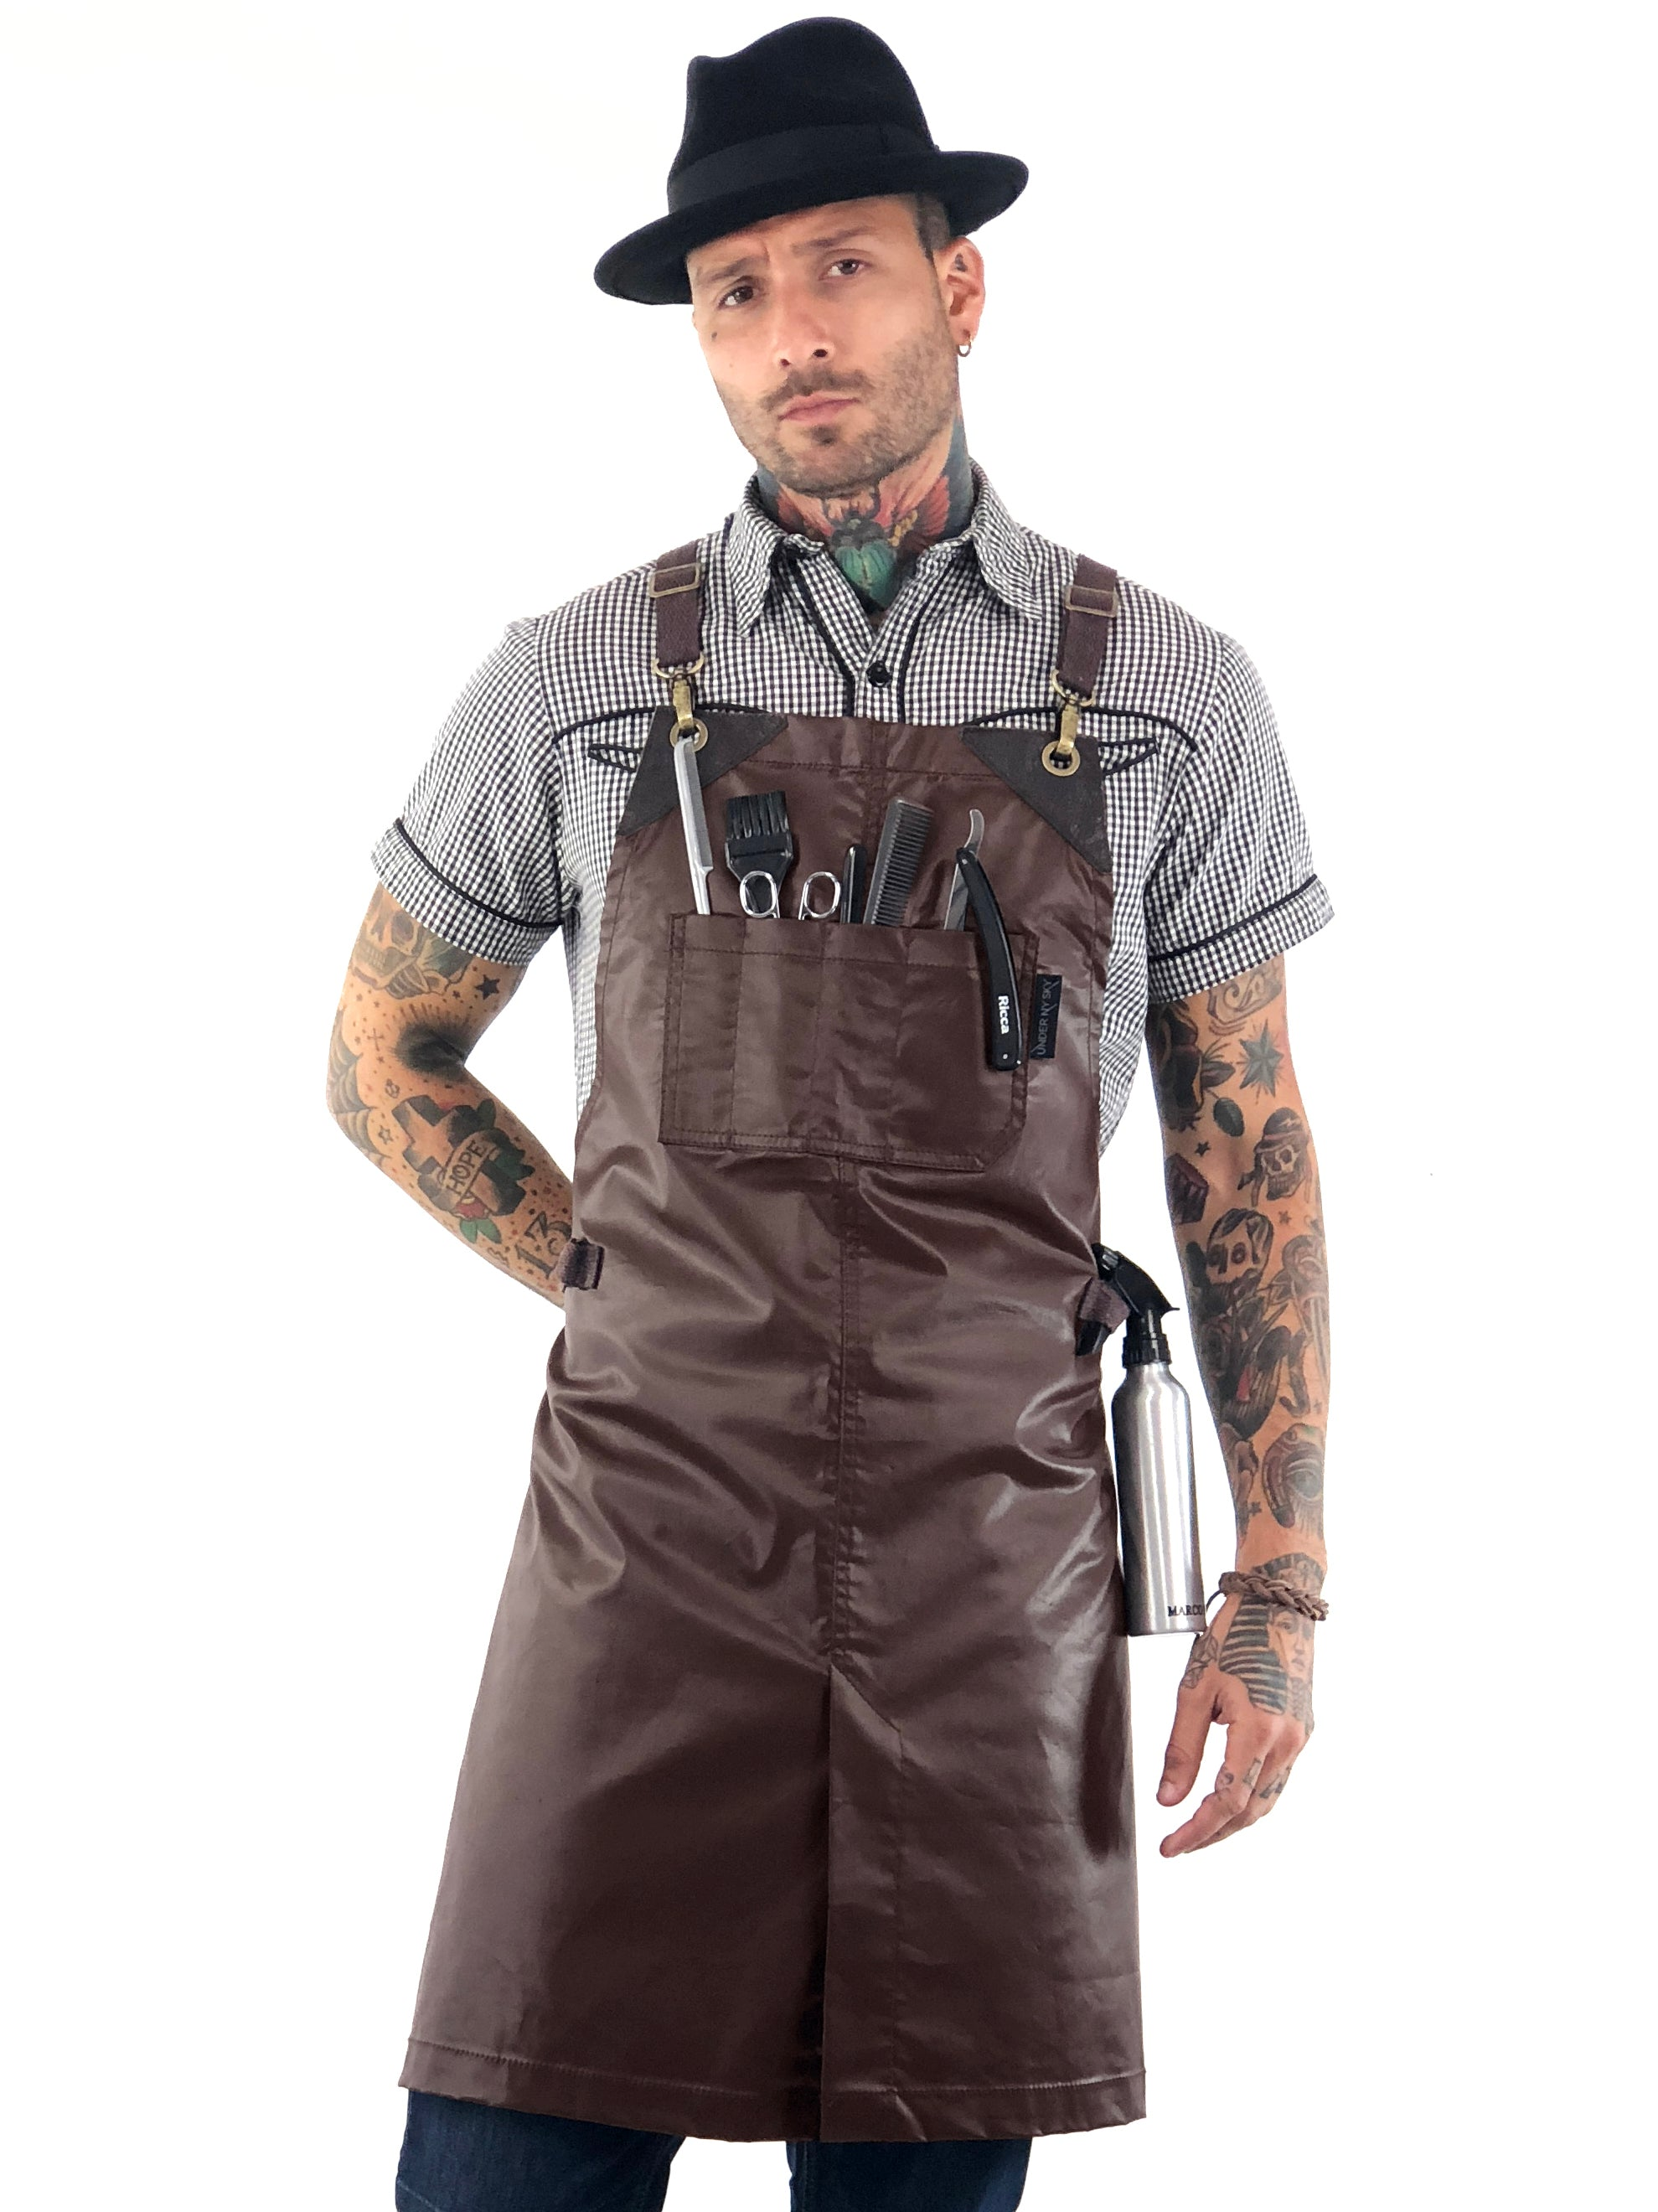 Barber Apron - Brown Water Resistant Coated Twill